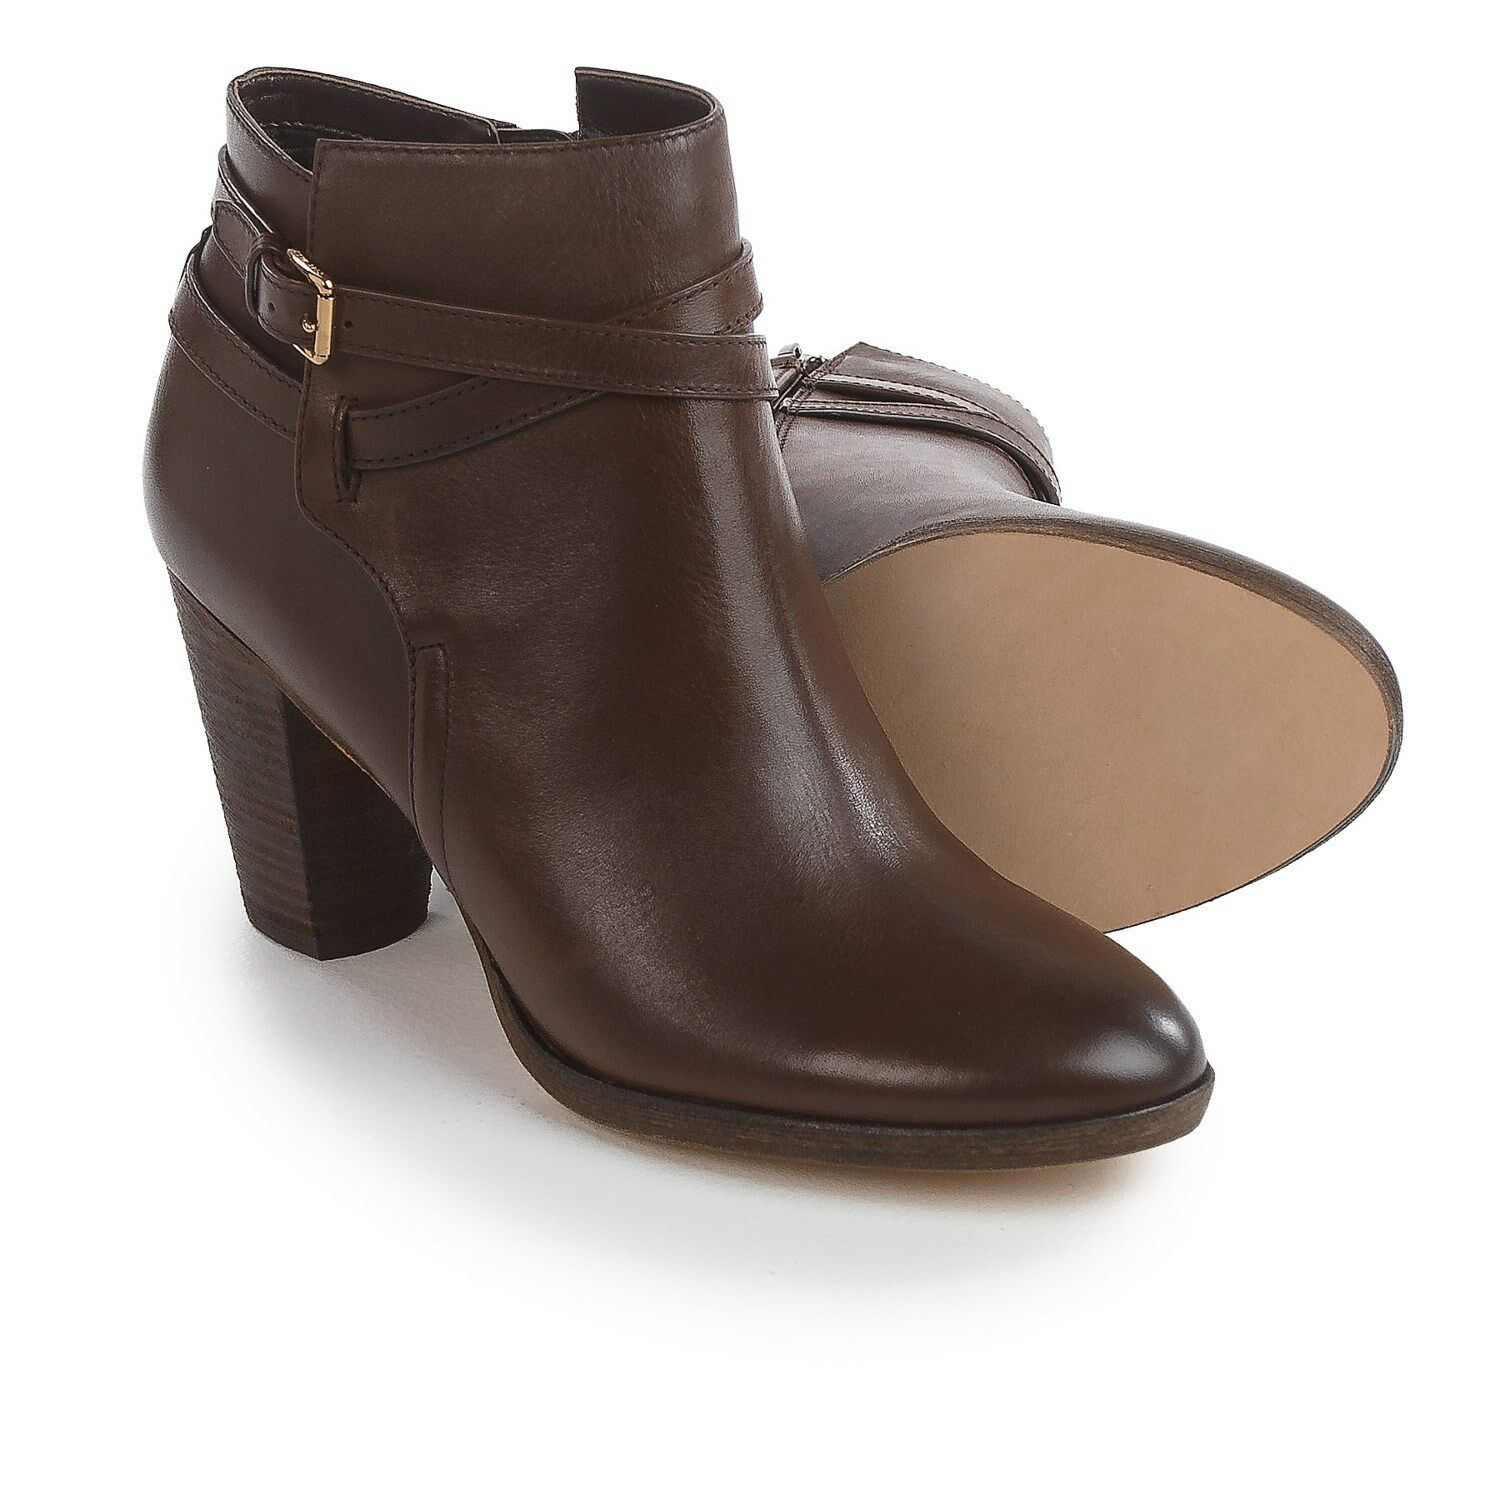 NEW Cole Haan Hayes Belt Ankle stivali, Chestnut Leather, donna Dimensione 11,  280